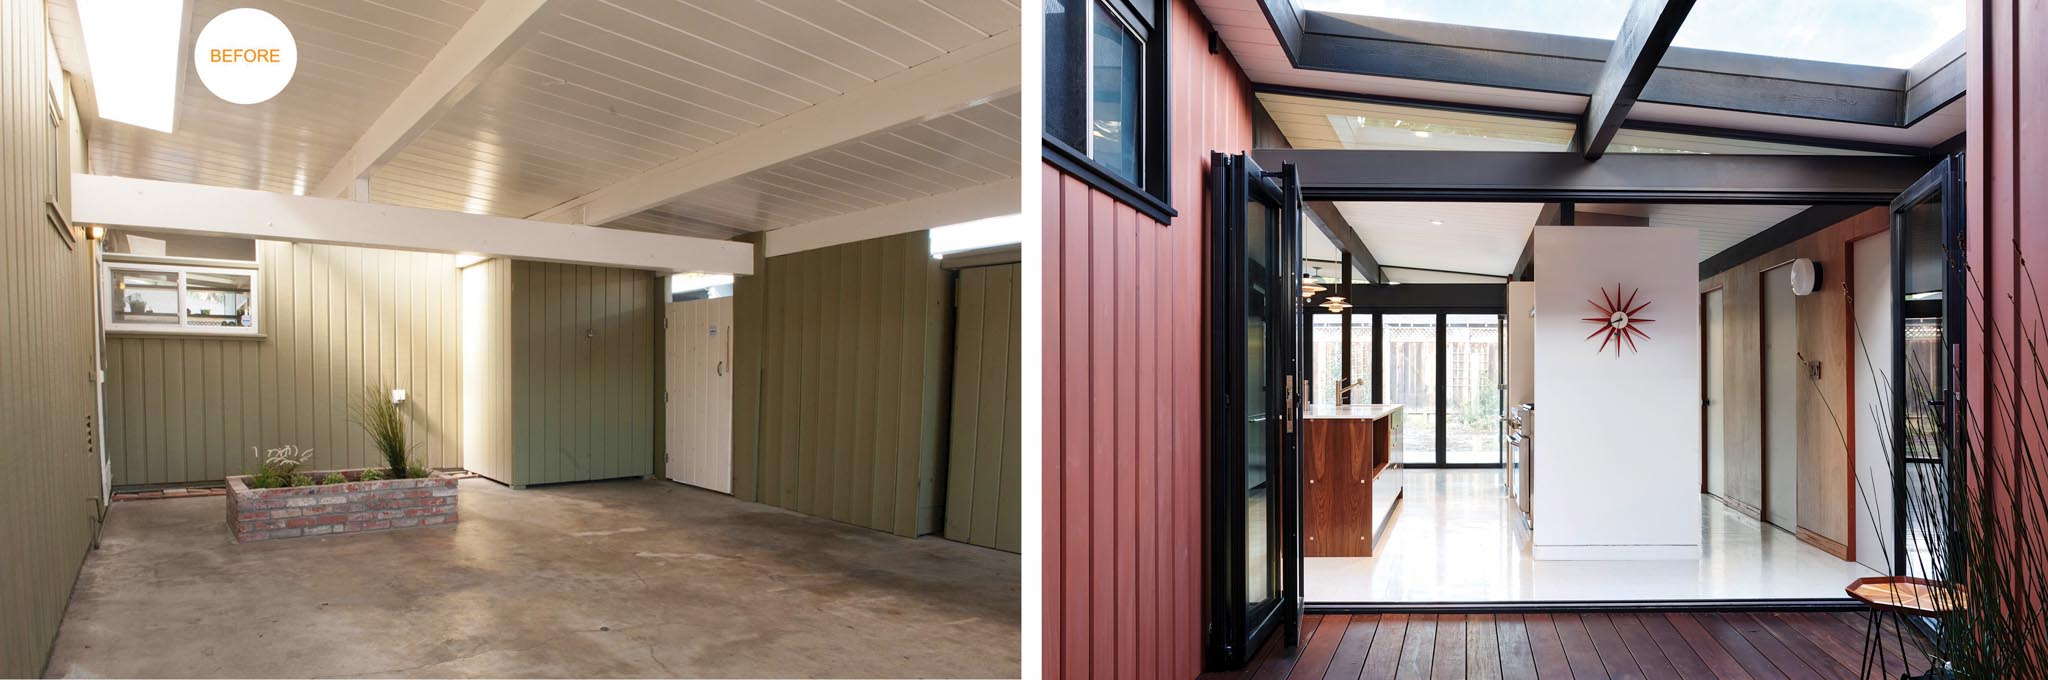 Eichler homes carport before and after remodel with folding glass wall SL60